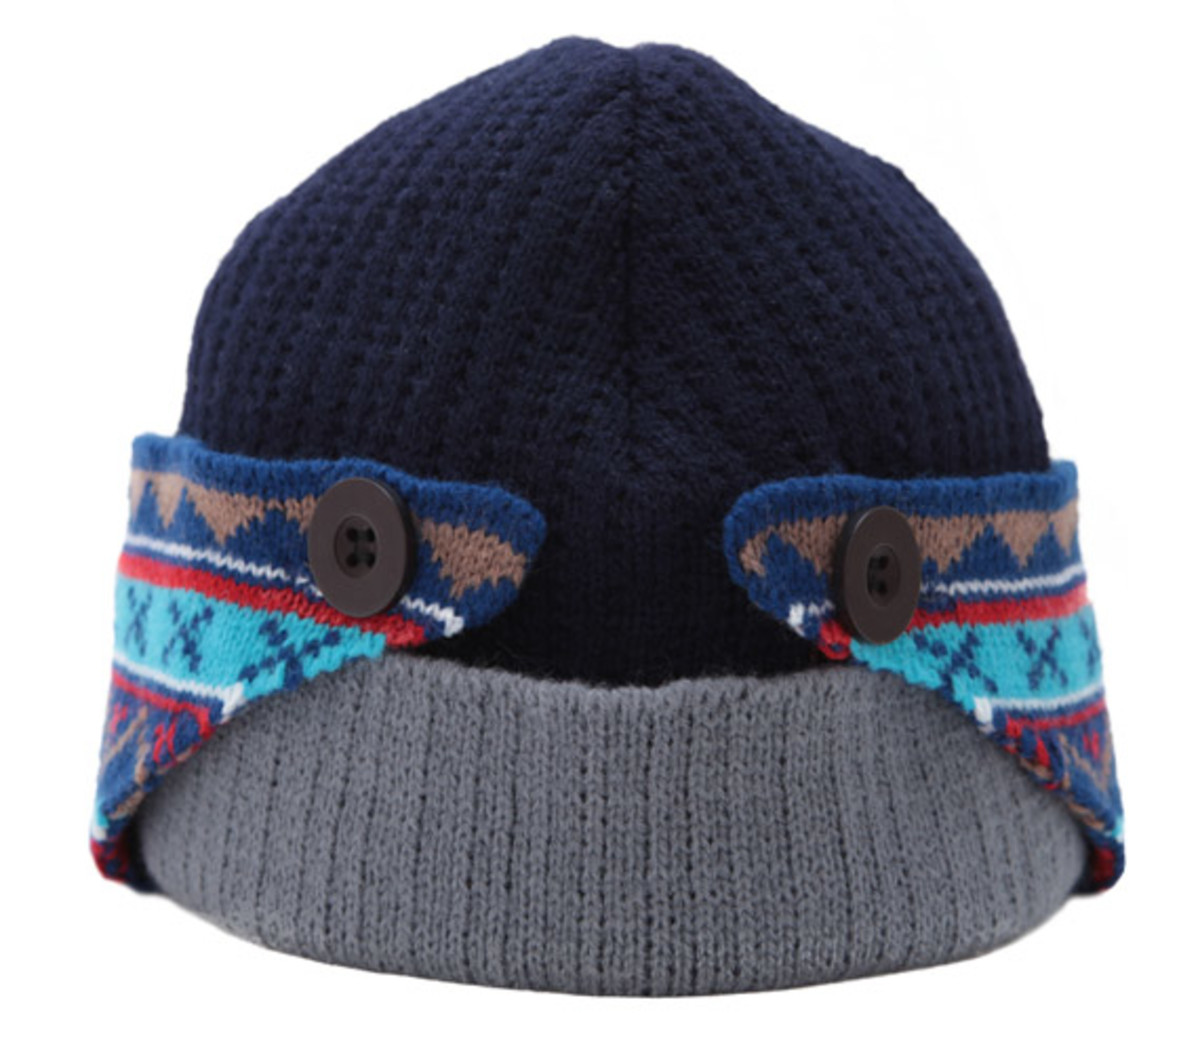 clot-tribesmen-fall-winter-2012-collection-series-2-hats-03